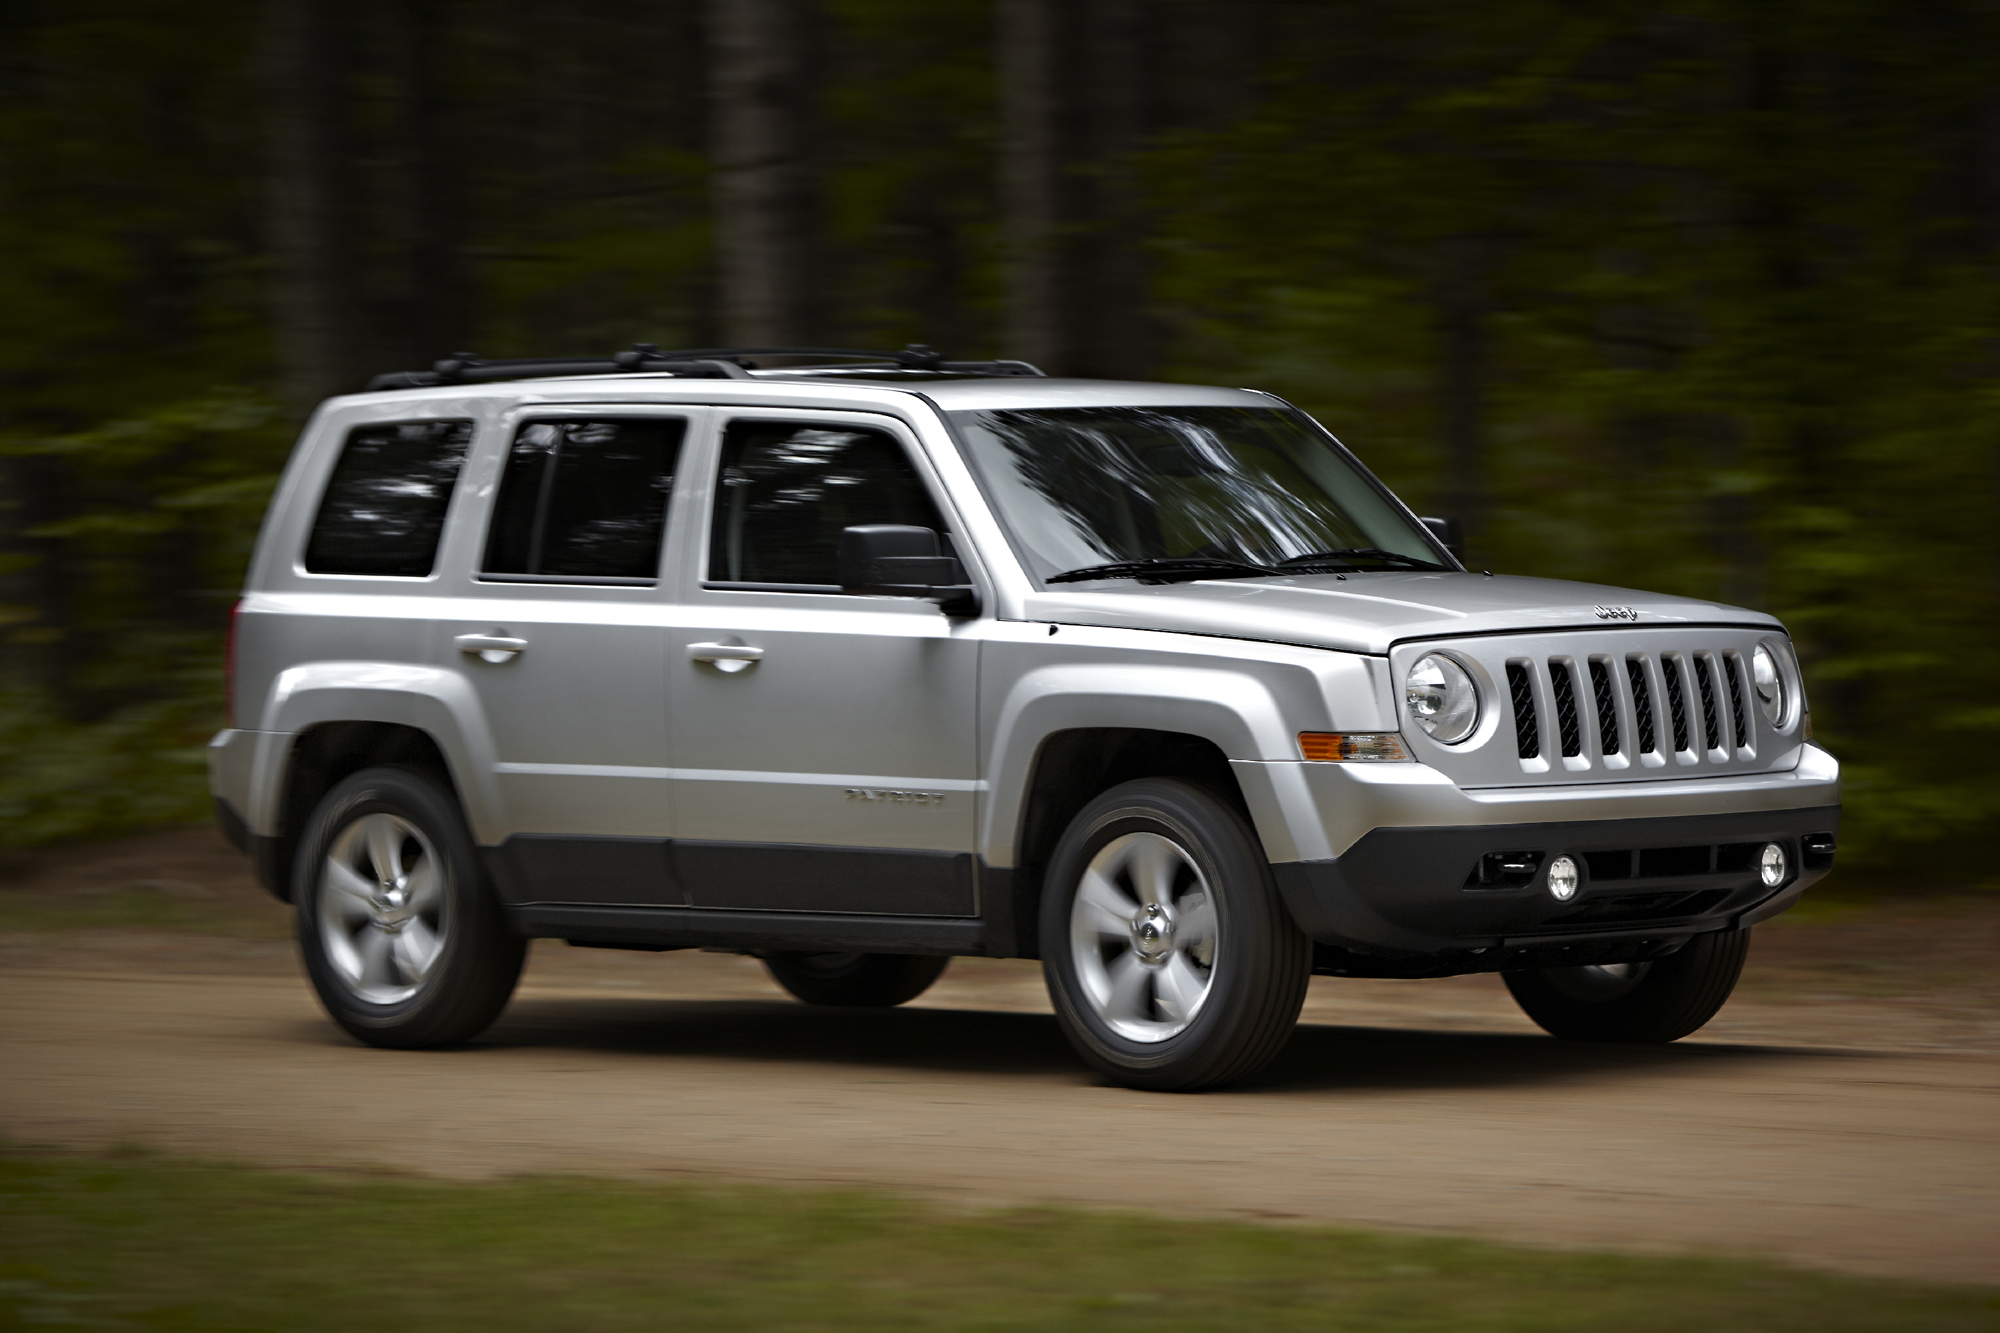 Jeep Patriot 3rd Row >> Chrysler agrees to recall 630,000 Jeep SUVs worldwide for air bag, fluid leak problems - The Blade